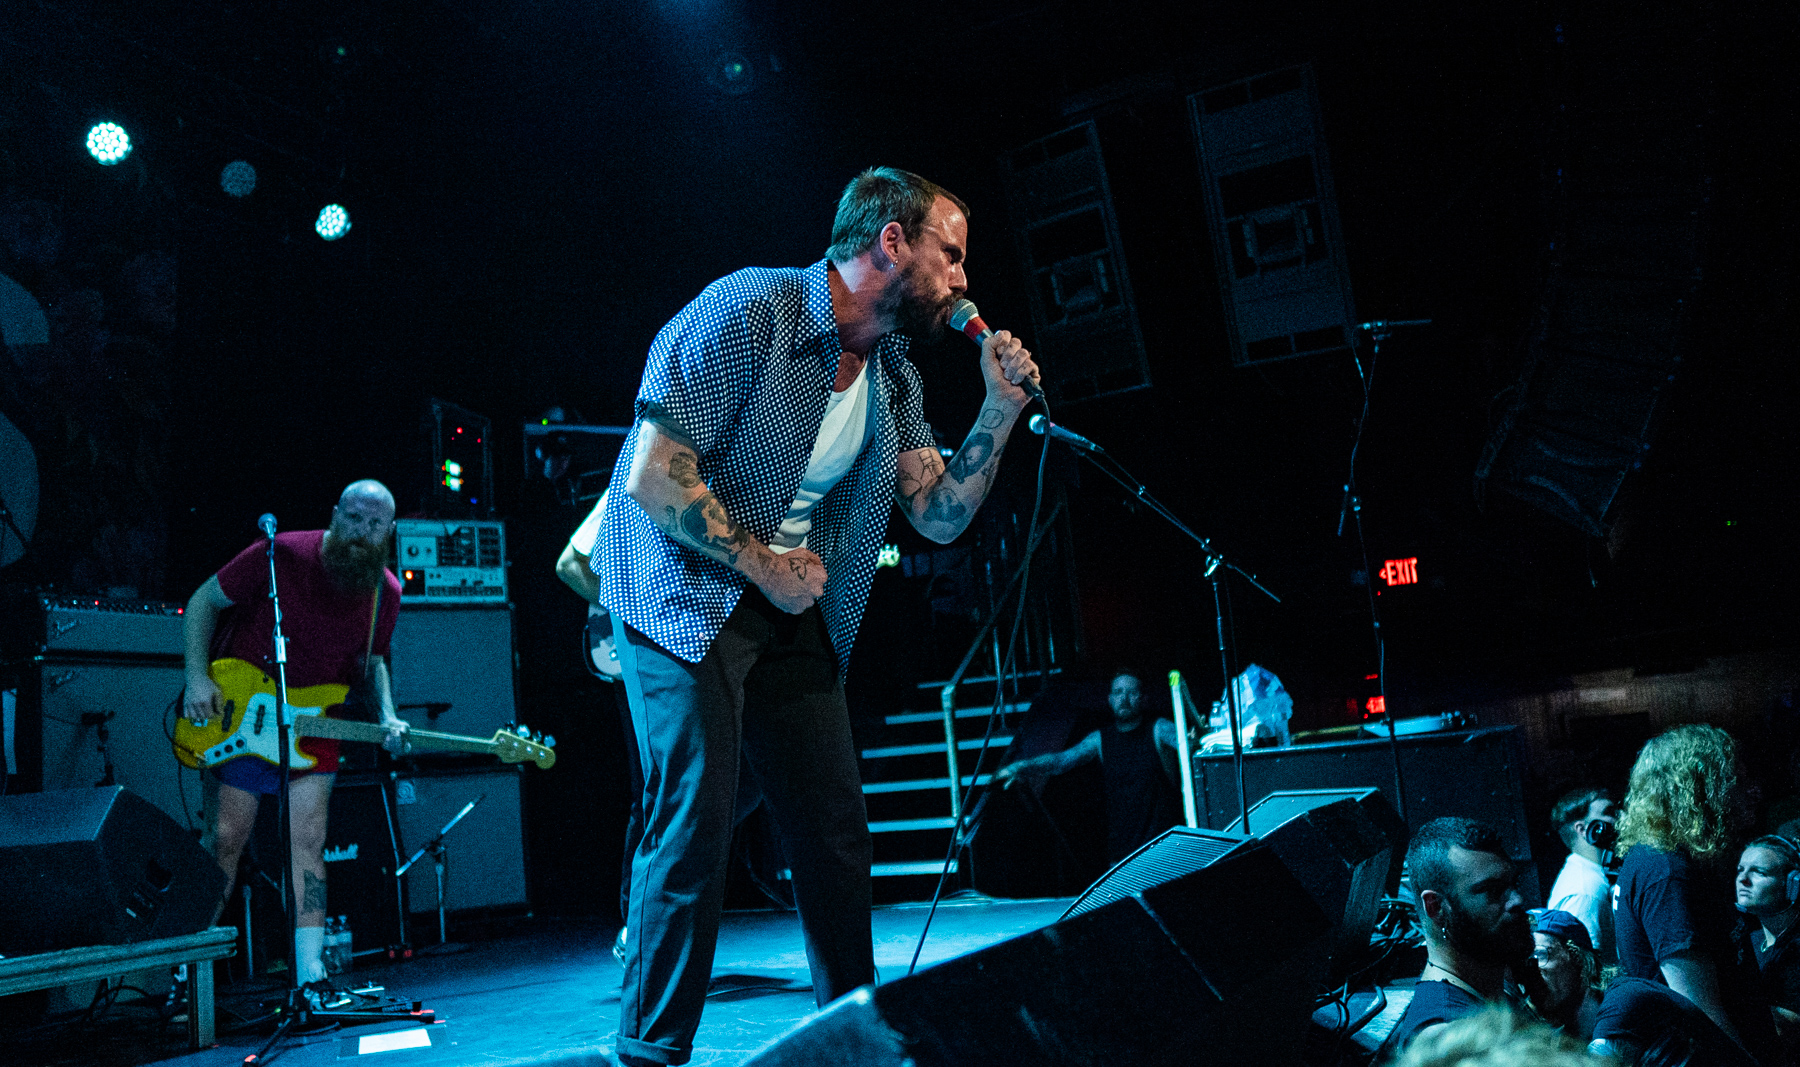 Idles_FirstAvenue_080319_Chris_Goyette_05